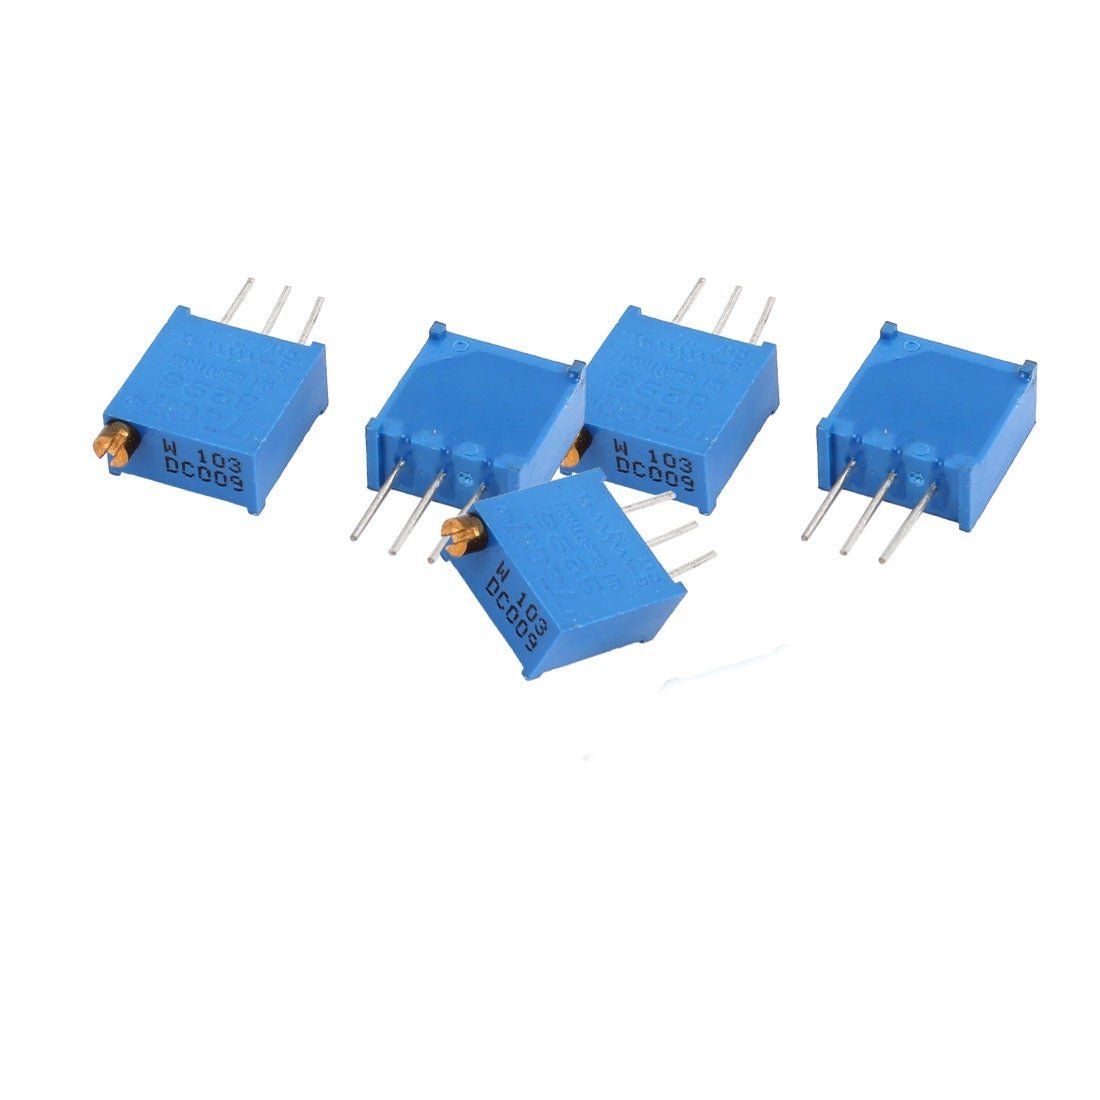 Shop 5pcs 3296w 103 10k Ohm High Precision Variable Resistor Circuit Potentiometer On Sale Free Shipping Orders Over 45 18273957